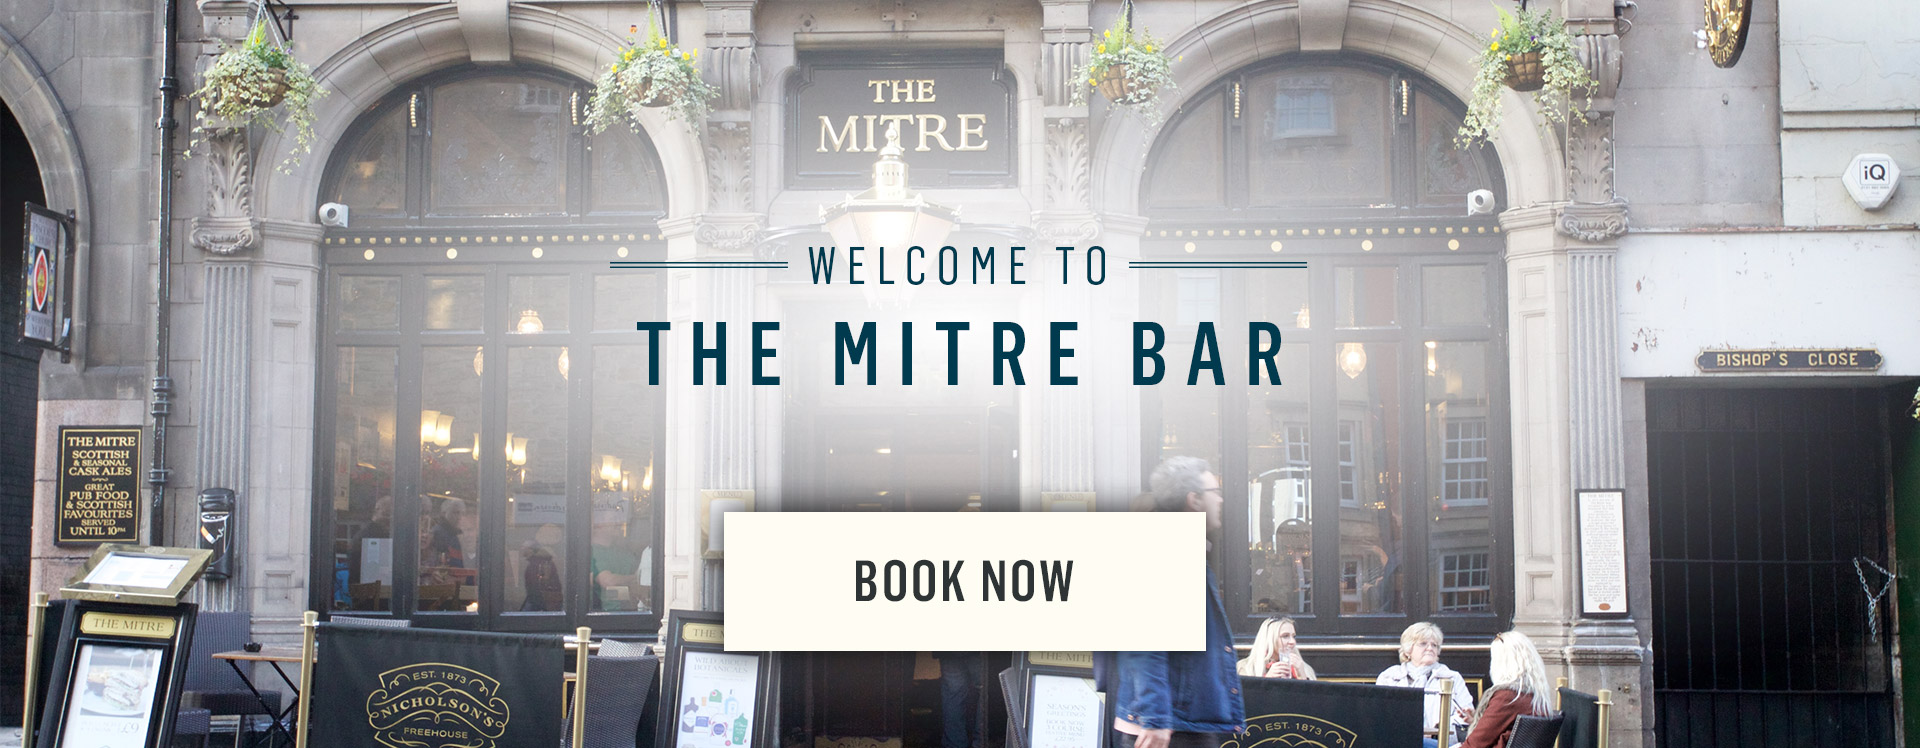 Welcome to The Mitre Bar - Book Now